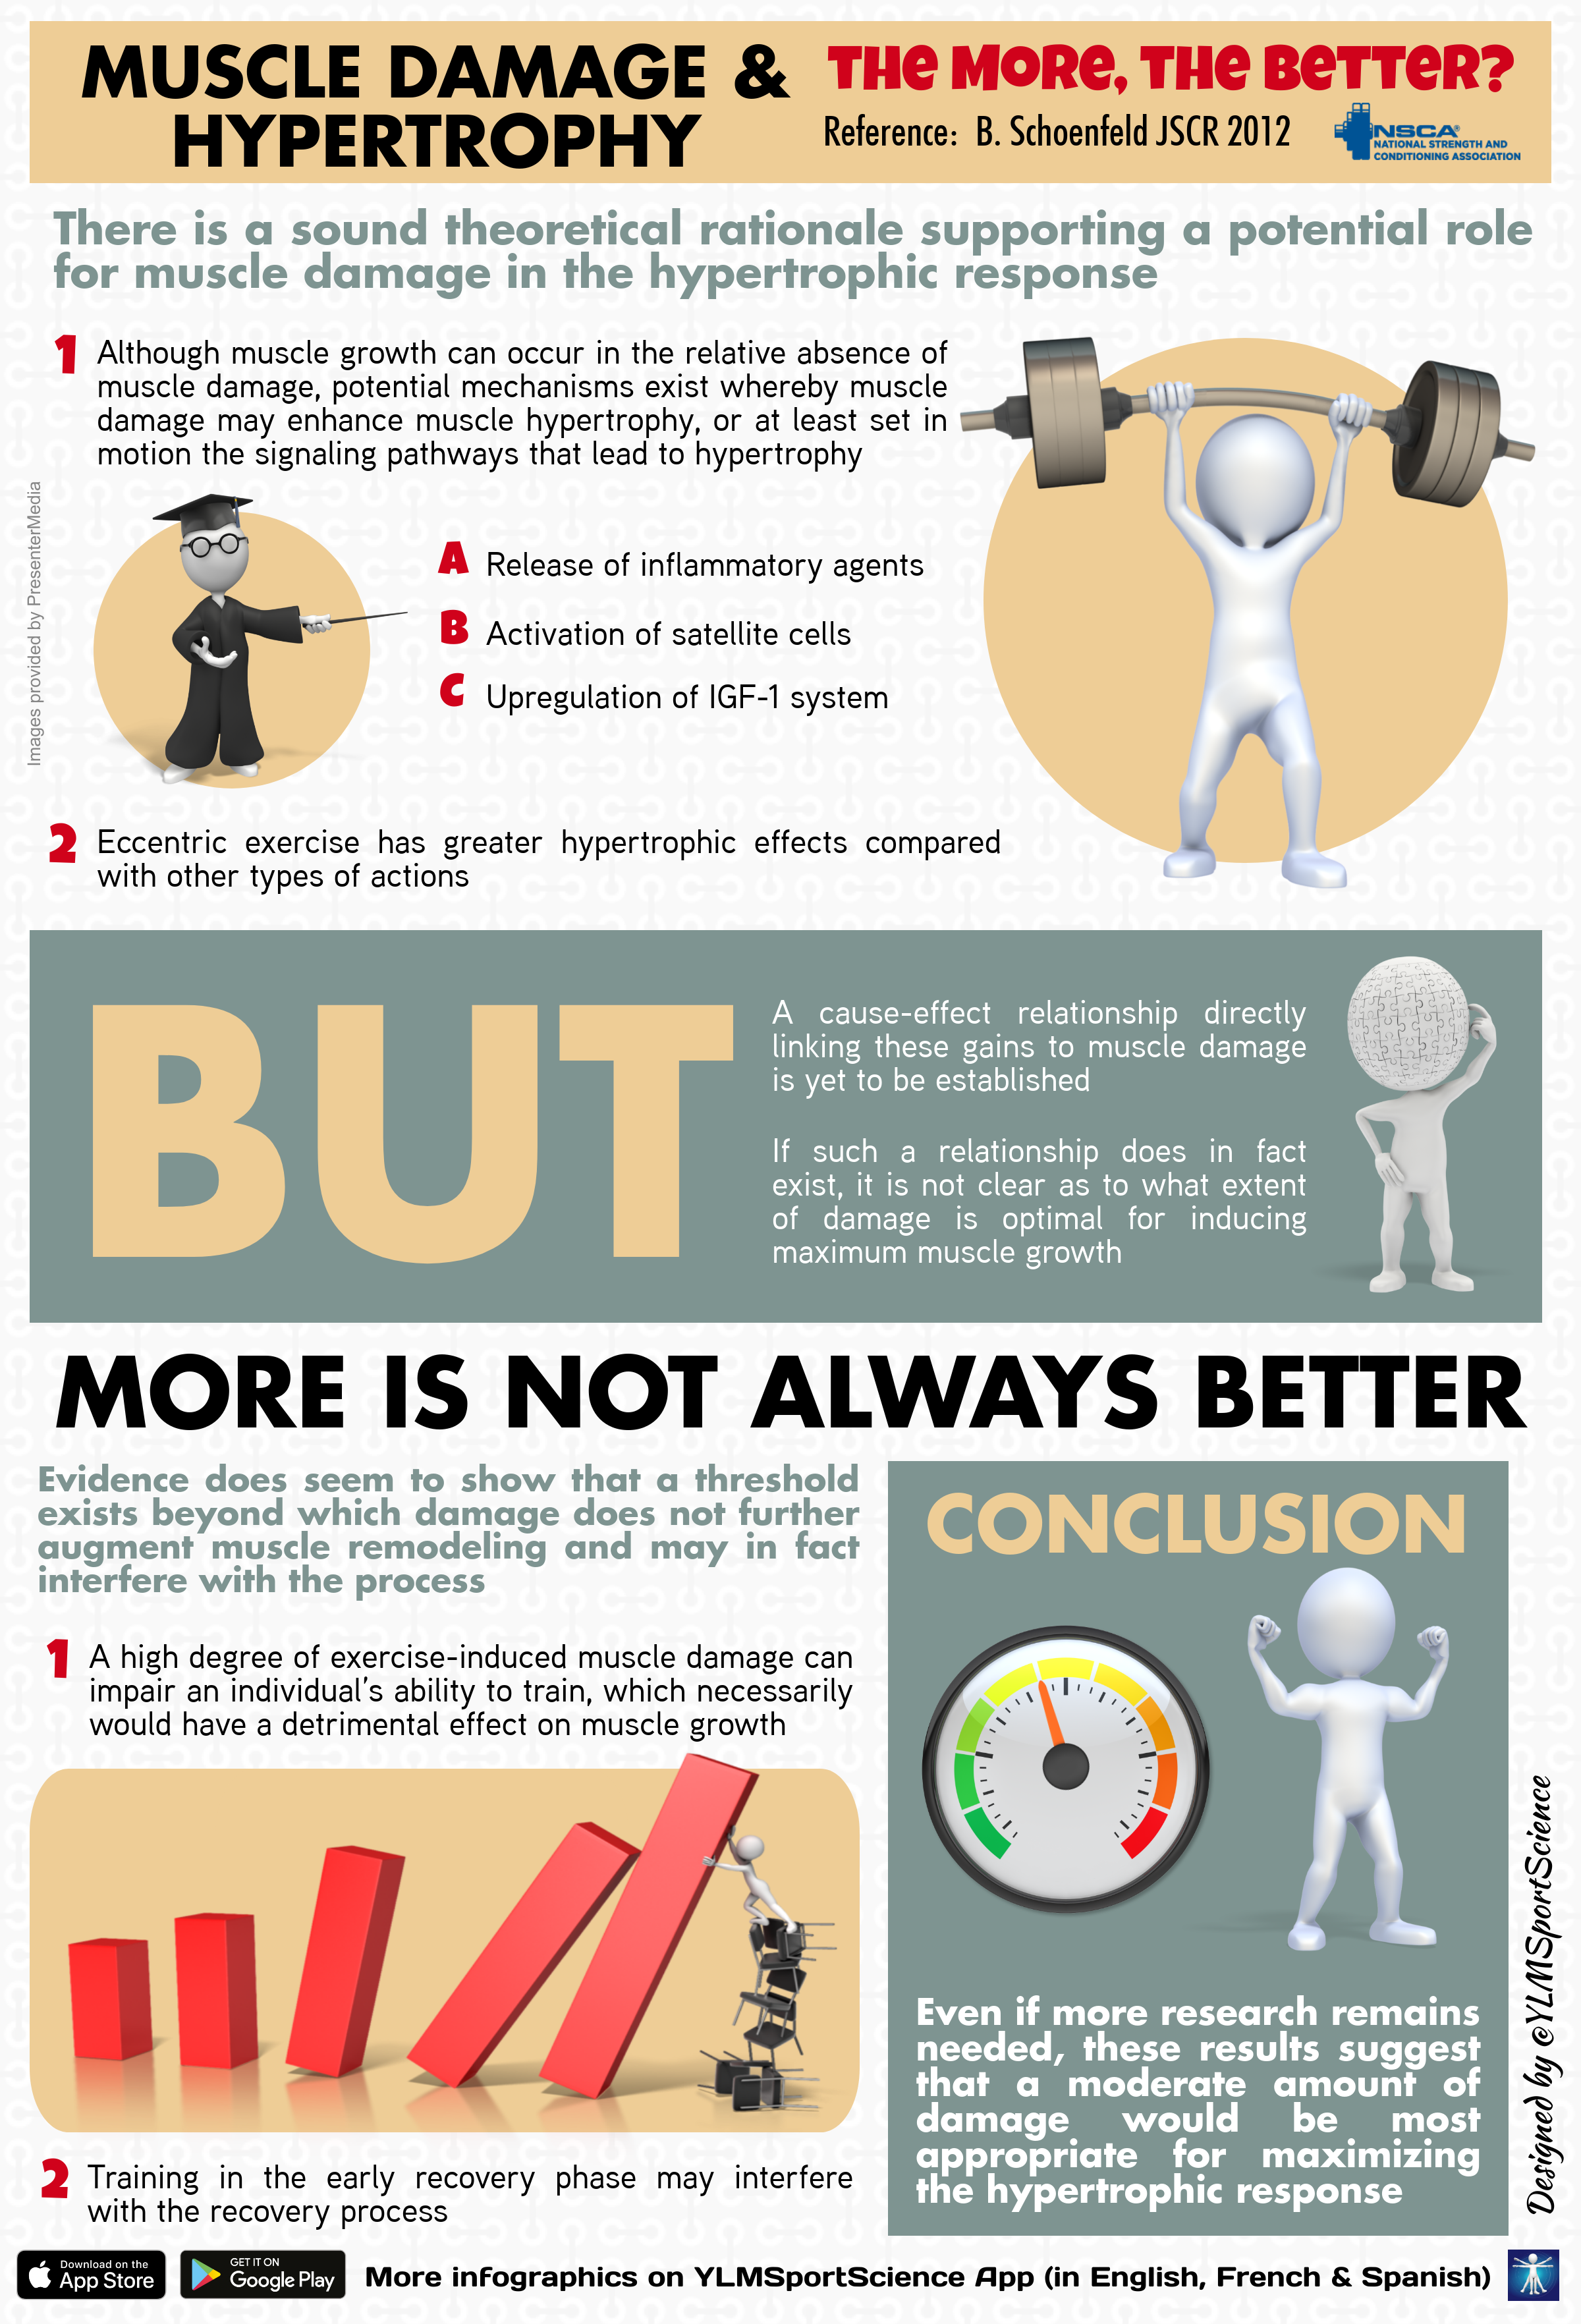 Muscle Damage and Hypertrophy: The More, the Better?